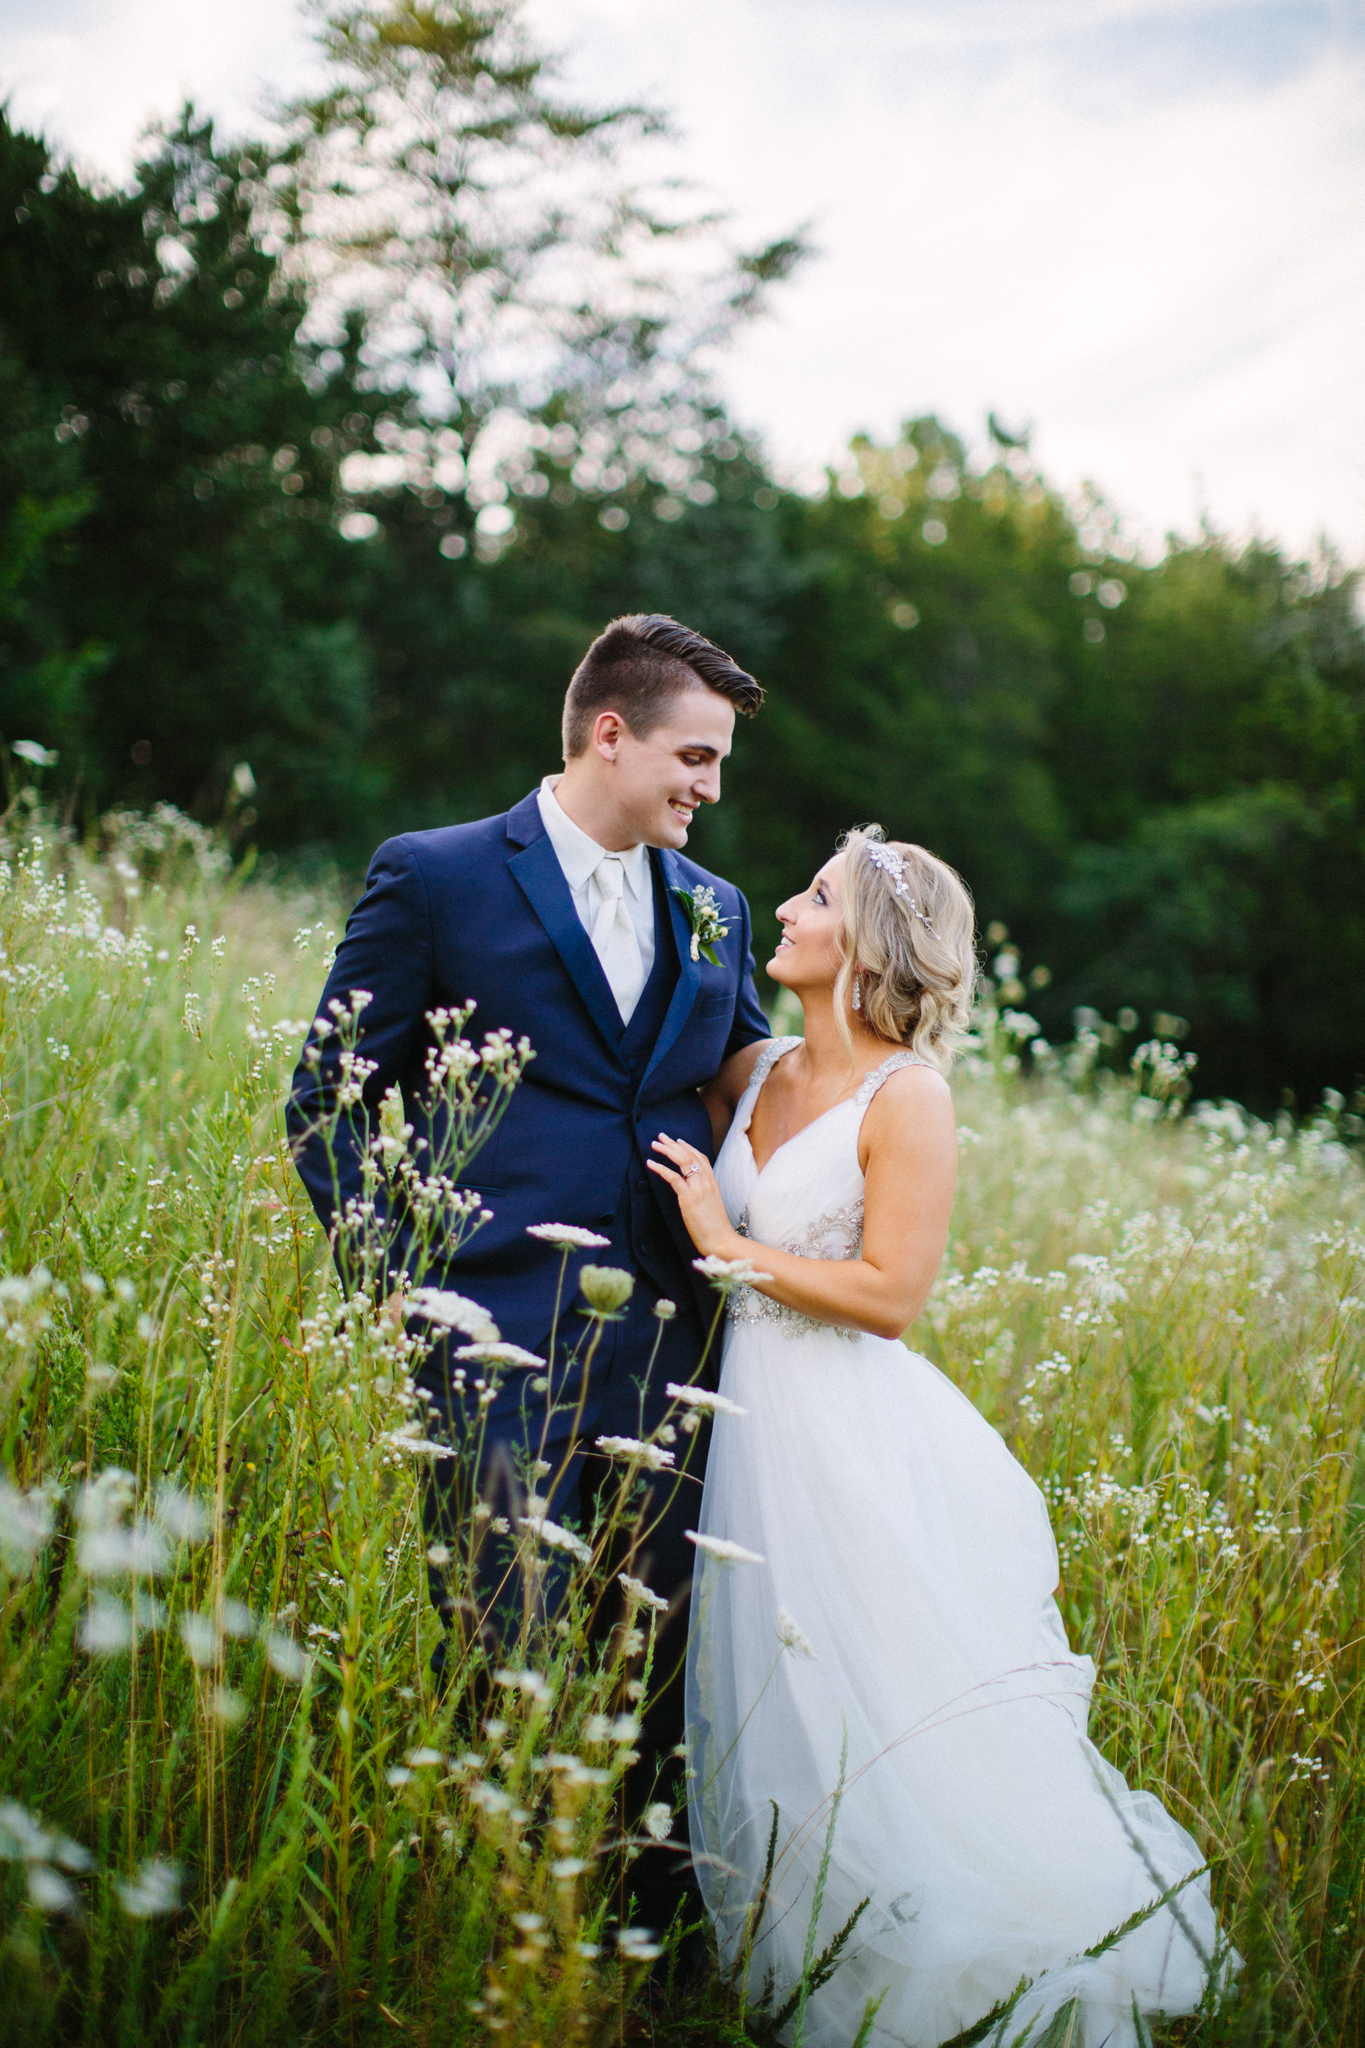 """Sarah is the absolute best of the best! I find myself recommending her to every newly engaged couple that I know! My husband and I were so pleased with our wedding photos; everytime I look through them, I decide on a new favorite! Sarah did a fantastic job at capturing our personalities, love for each other, and all the important details of our wedding day. She is affordable, a pleasure to work with, and produces a product that will definitely exceed your expectations!""  KATIE+JEREMY"